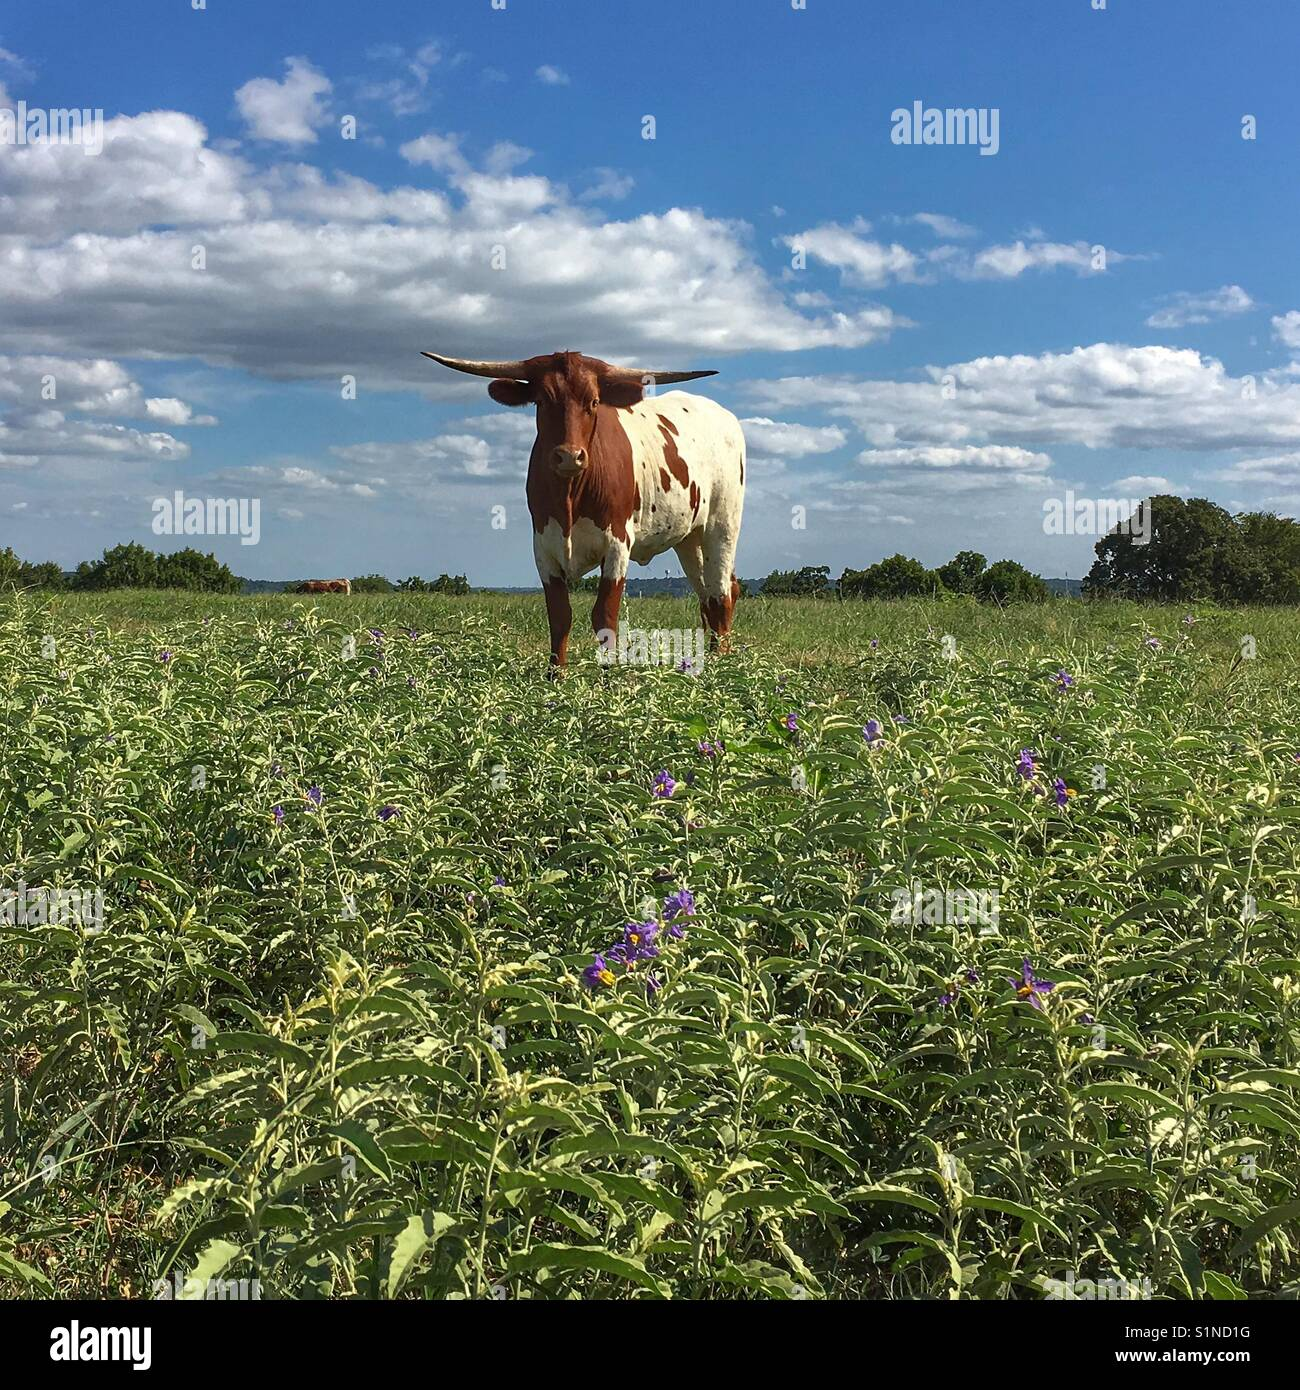 Texas Longhorn cow standing in a flowered field with blue sky and white puffy clouds on a sunny day. - Stock Image